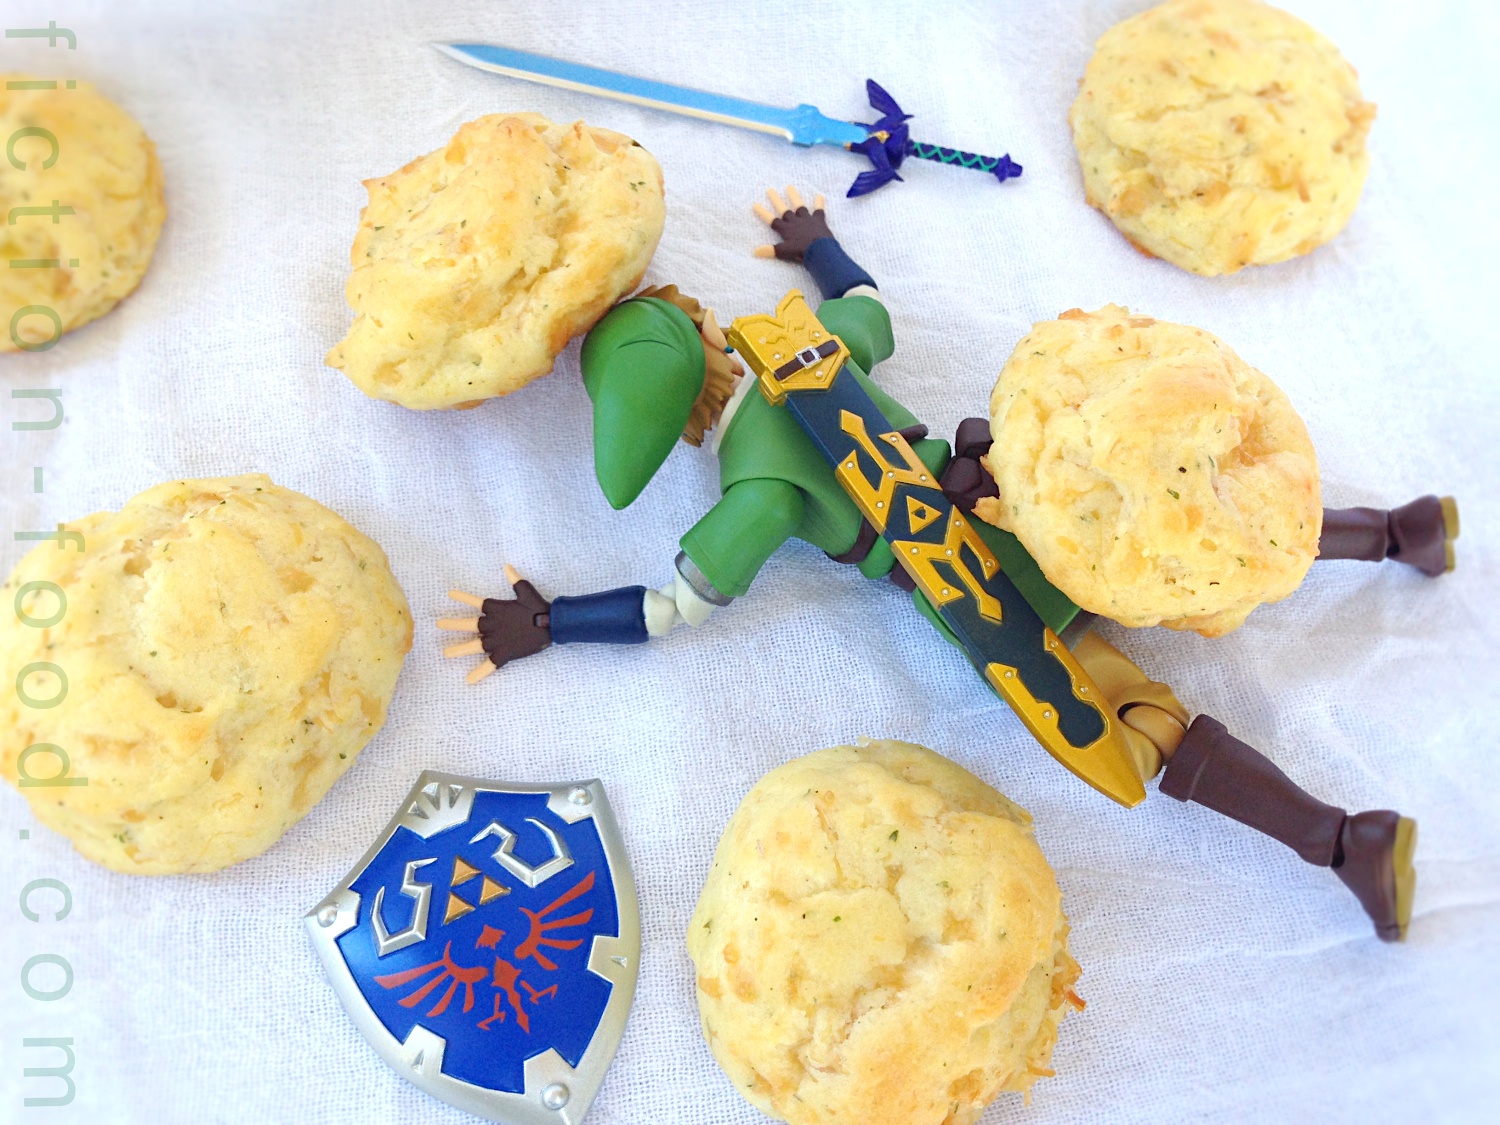 Fiction food caf cucco puffs the legend of zelda check out my other zelda recipes triforce muffins pumms pumpkin soup forumfinder Image collections